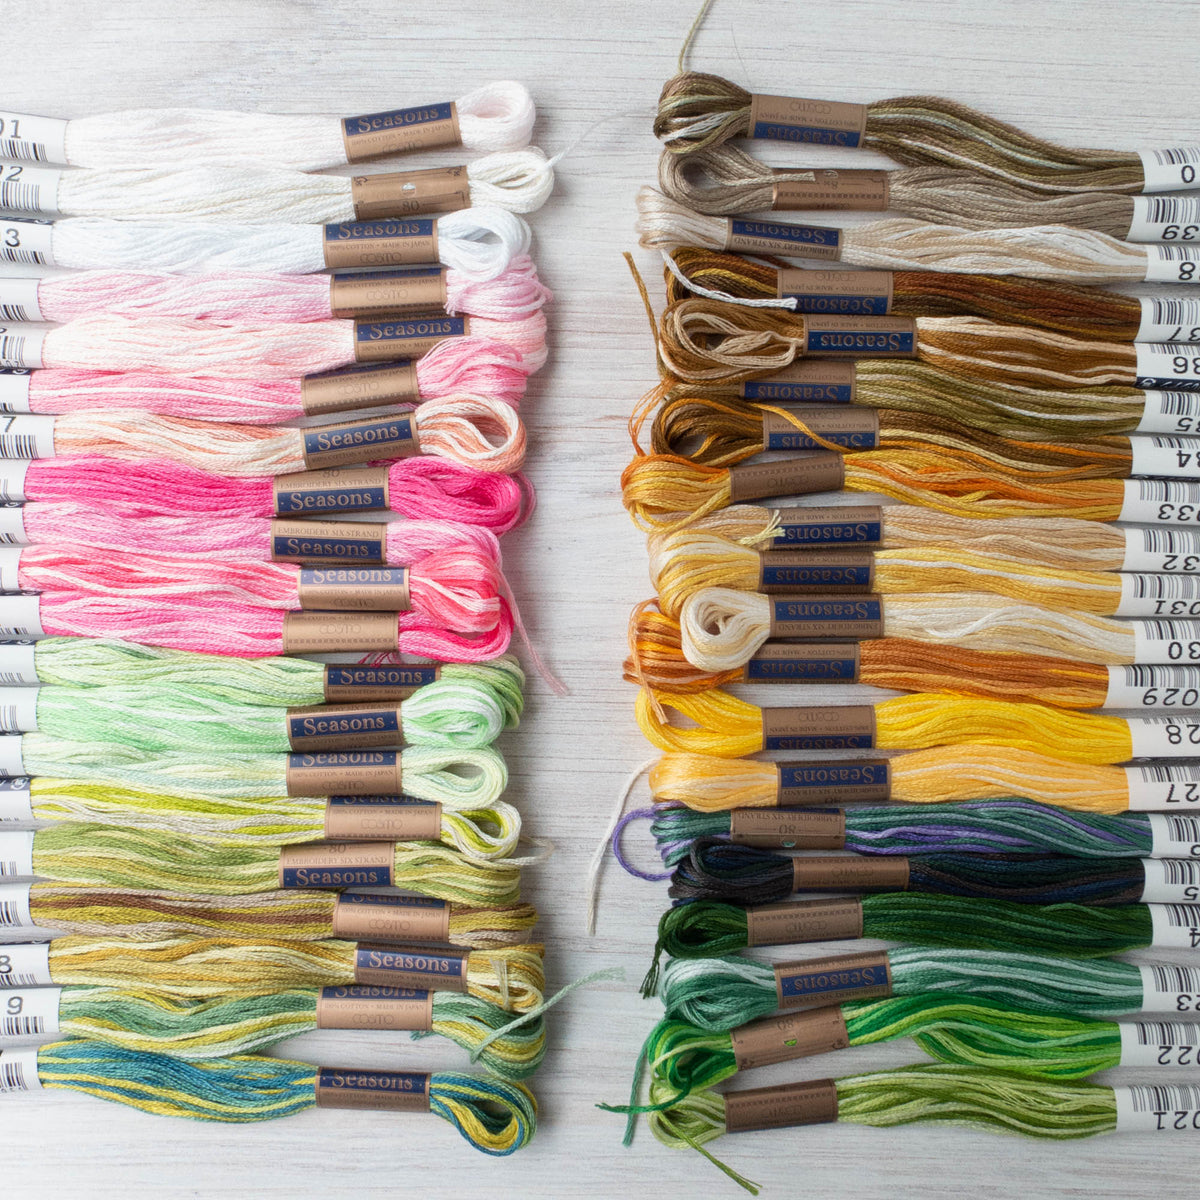 Cosmo Seasons Variegated Embroidery Floss Set - Early 8000s Collection (8001-8040)